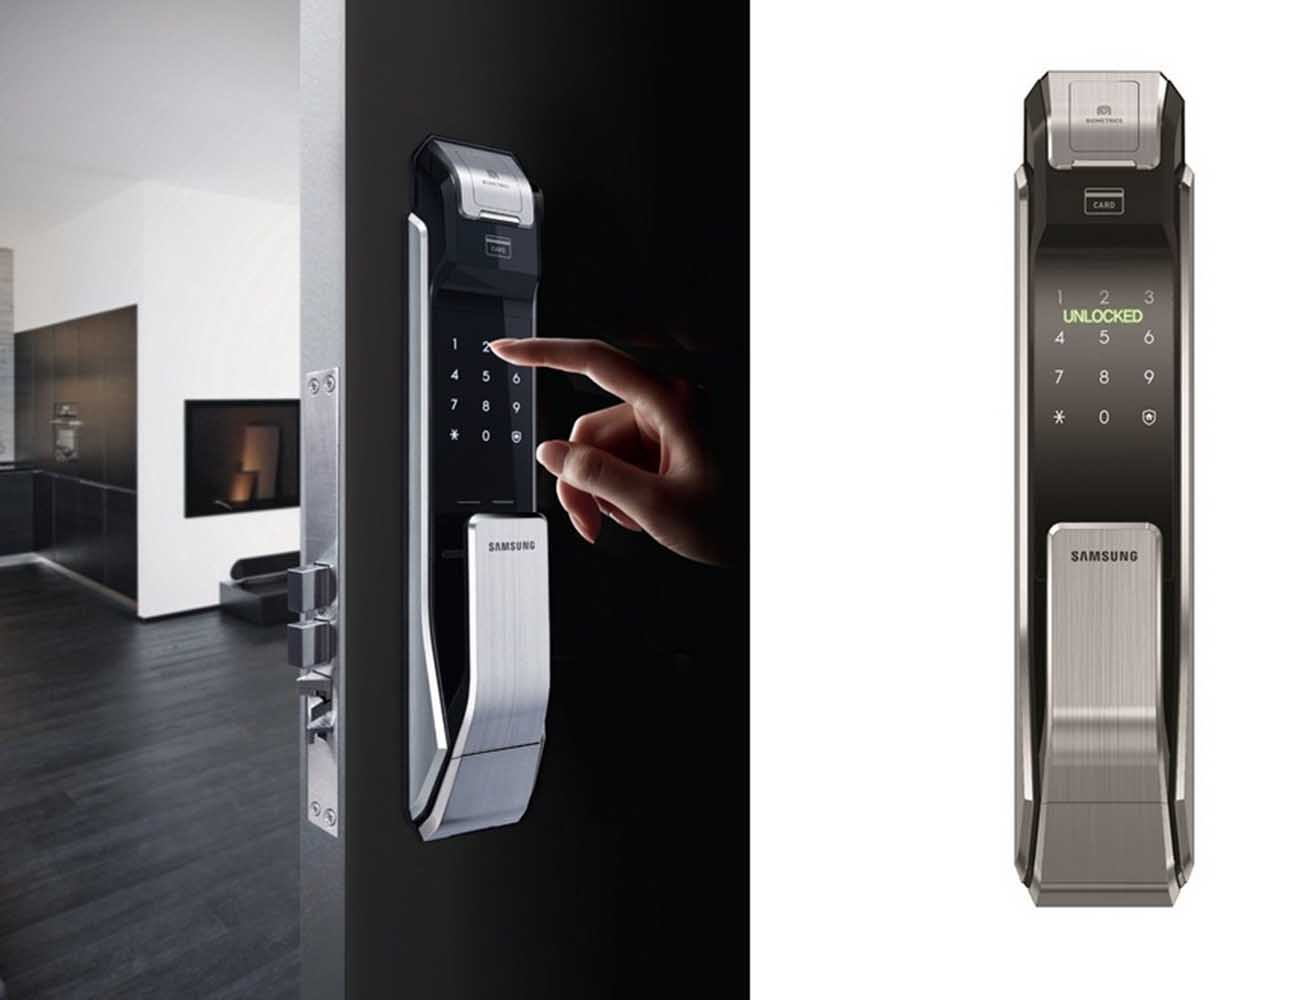 fingerprint door lock, keypad door lock